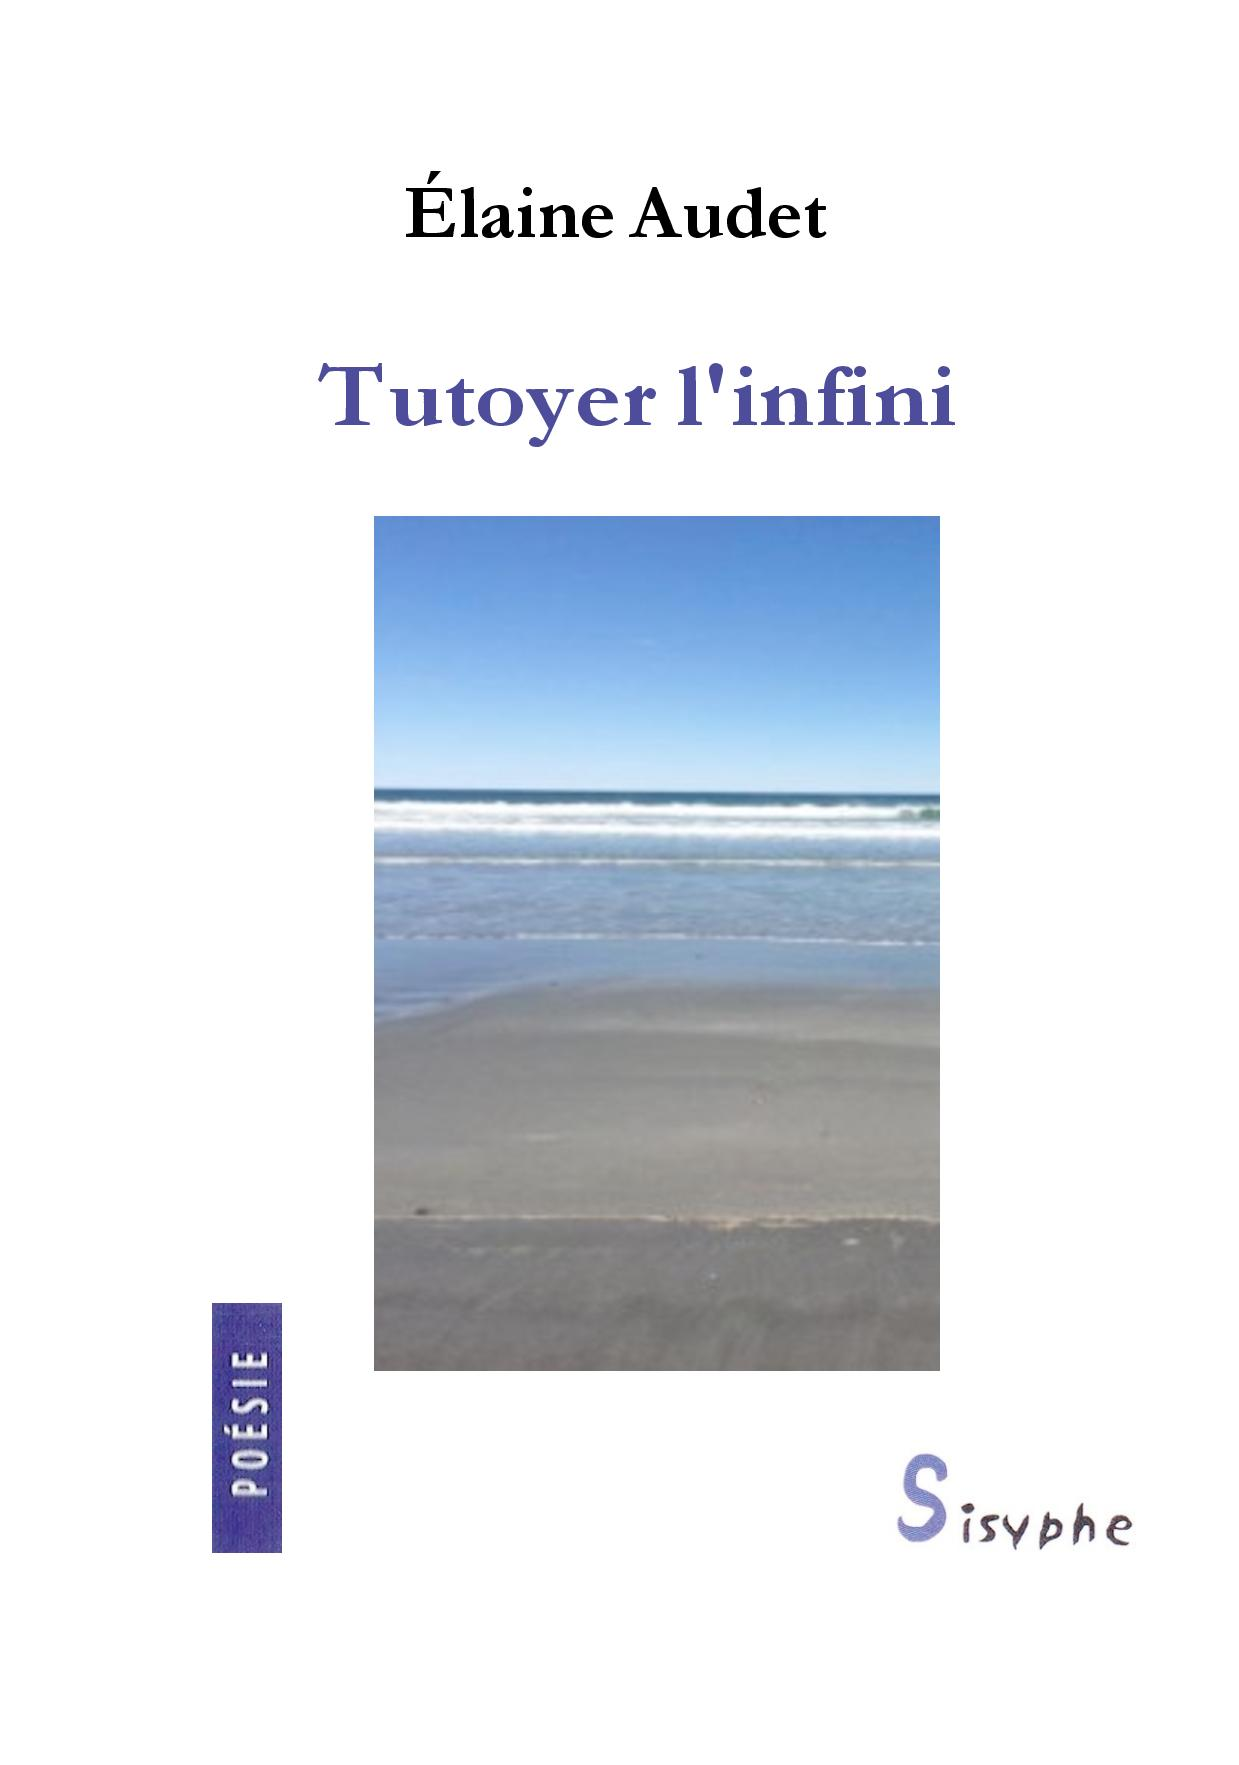 Tutoyer l'infini